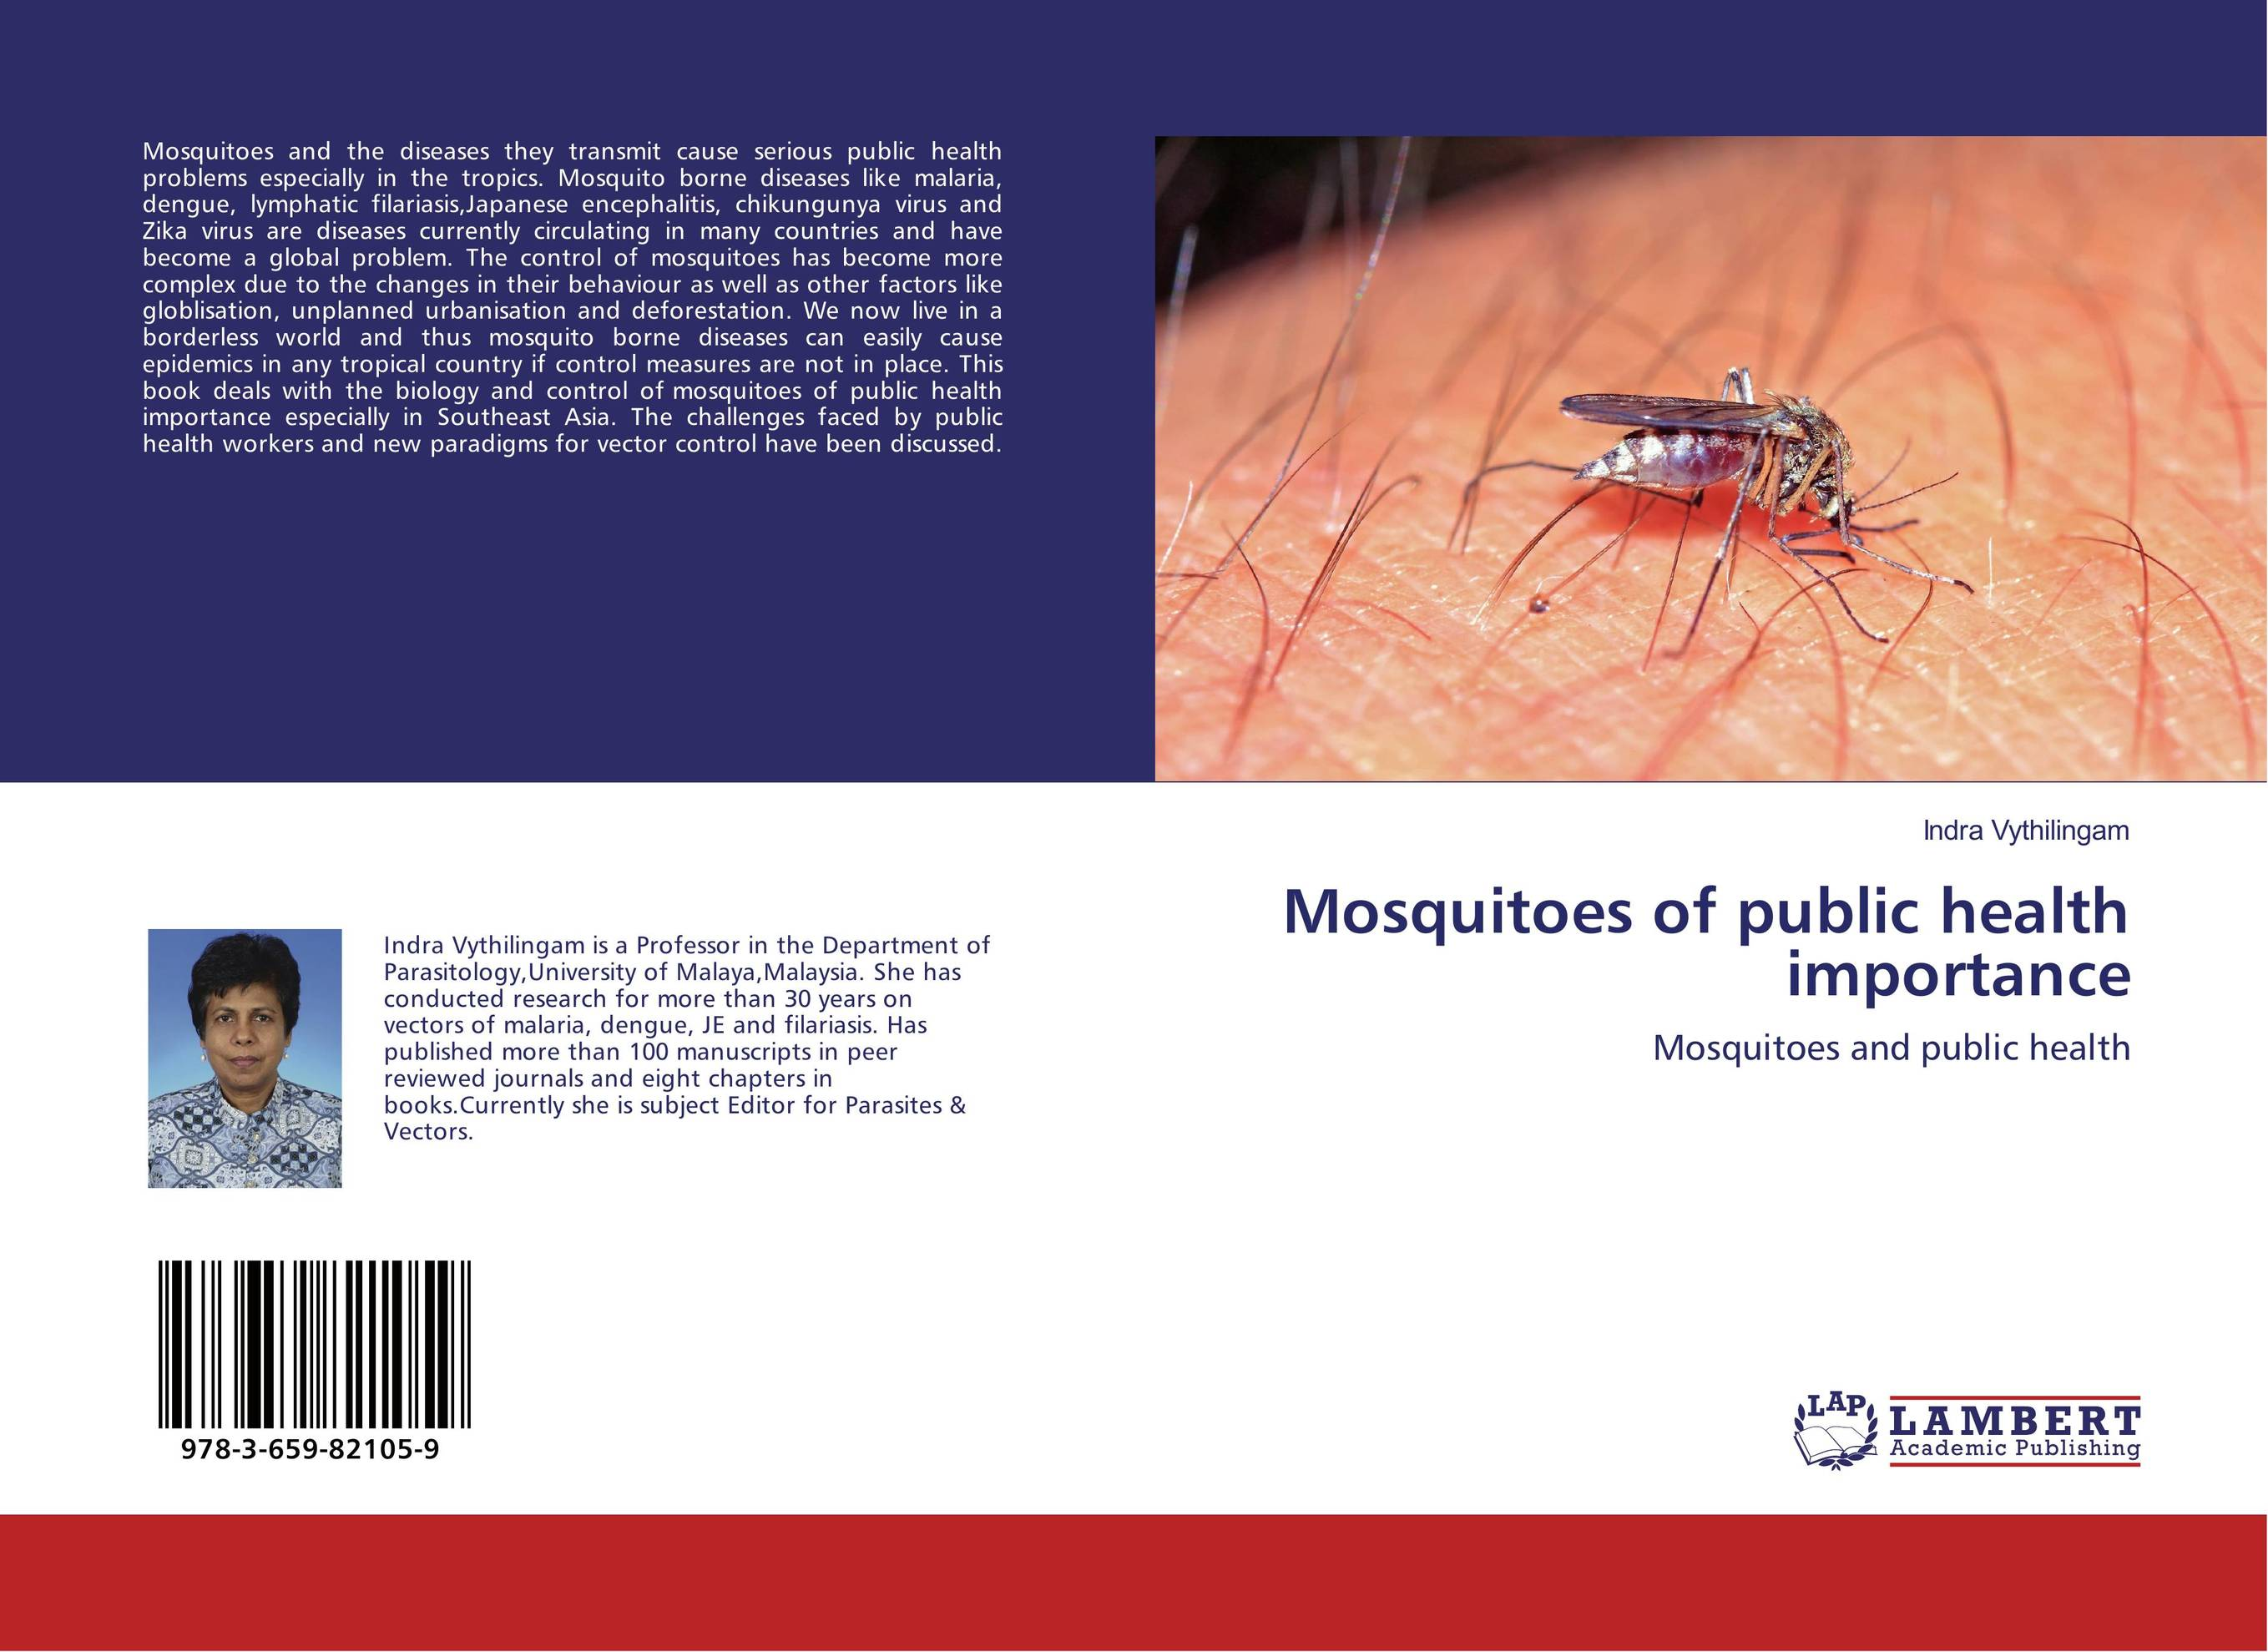 Mosquitoes of public health importance puthamohan vinayaga moorthi chelliah balasubramanian and afrin larifa efficacy of trichoderma against vector mosquitoes